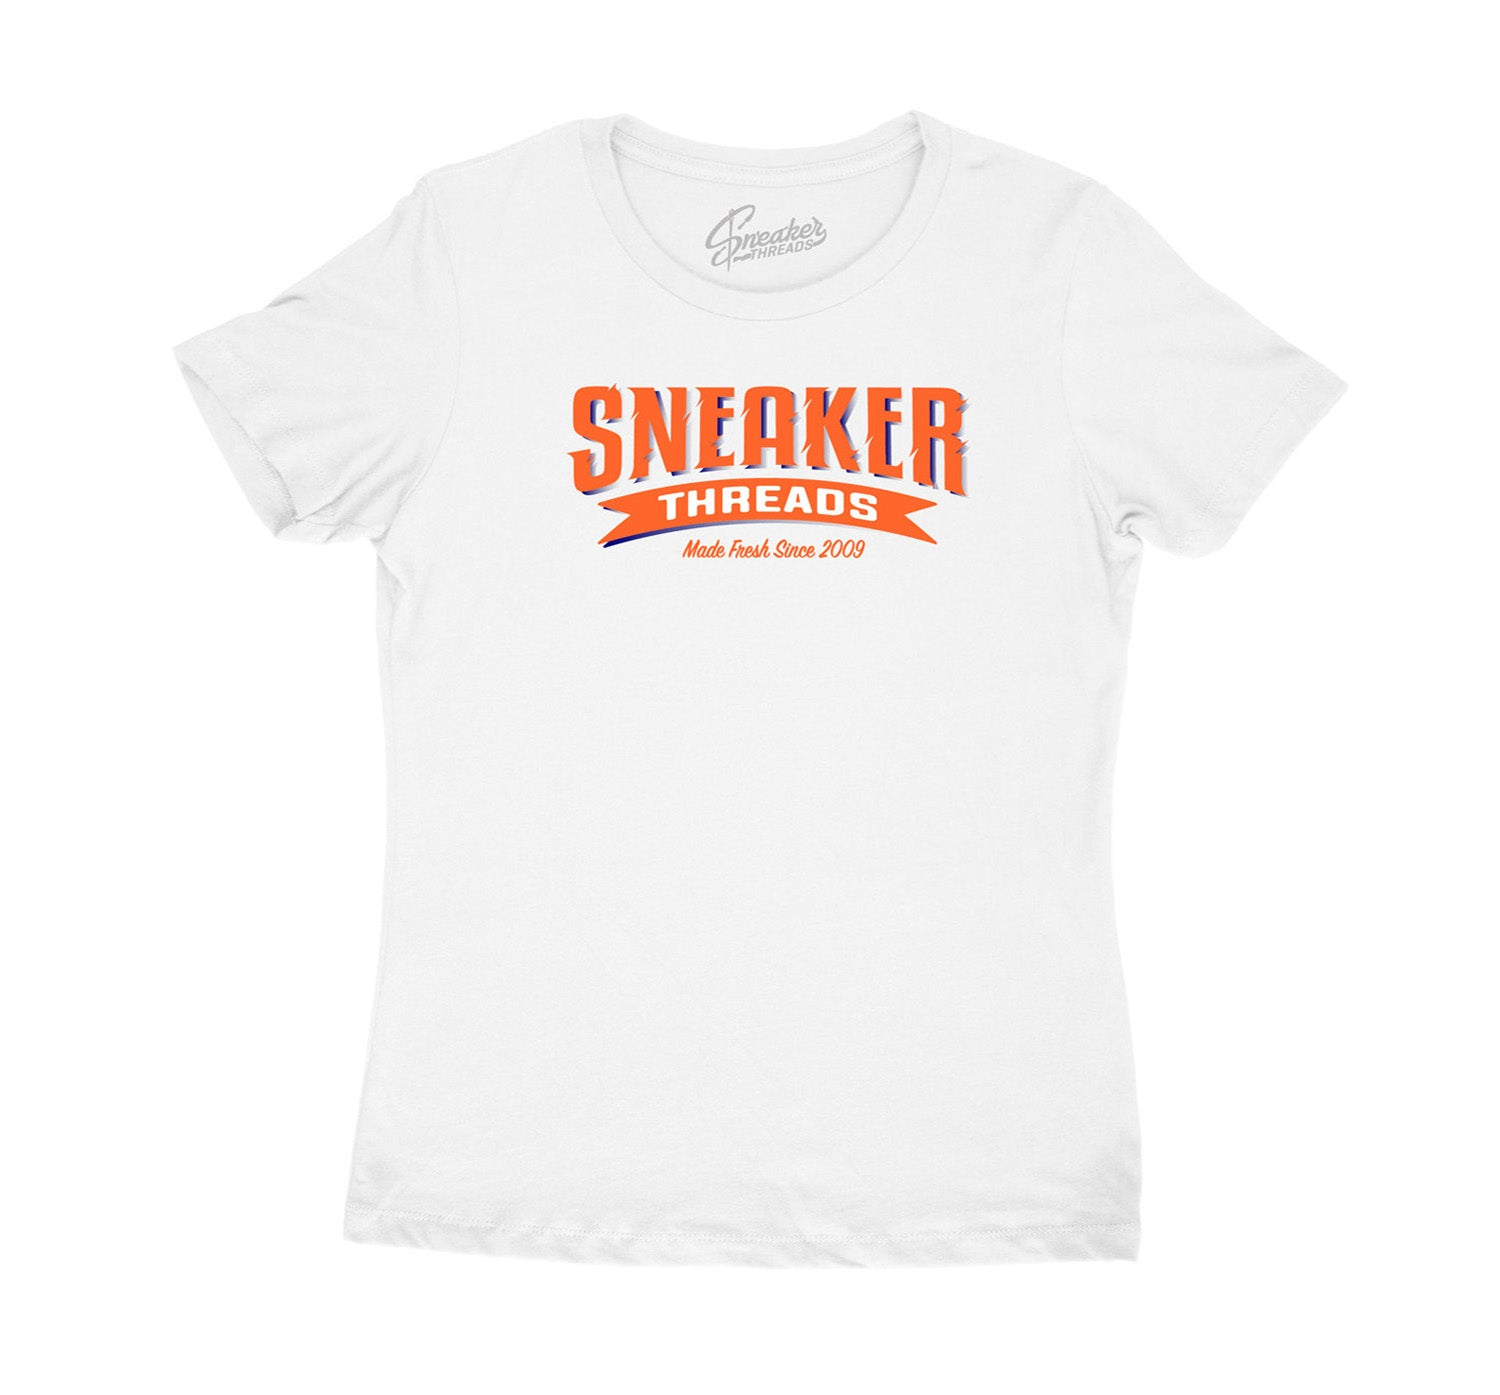 Jordan 3 knicks womens sneaker matches womens tees created to match